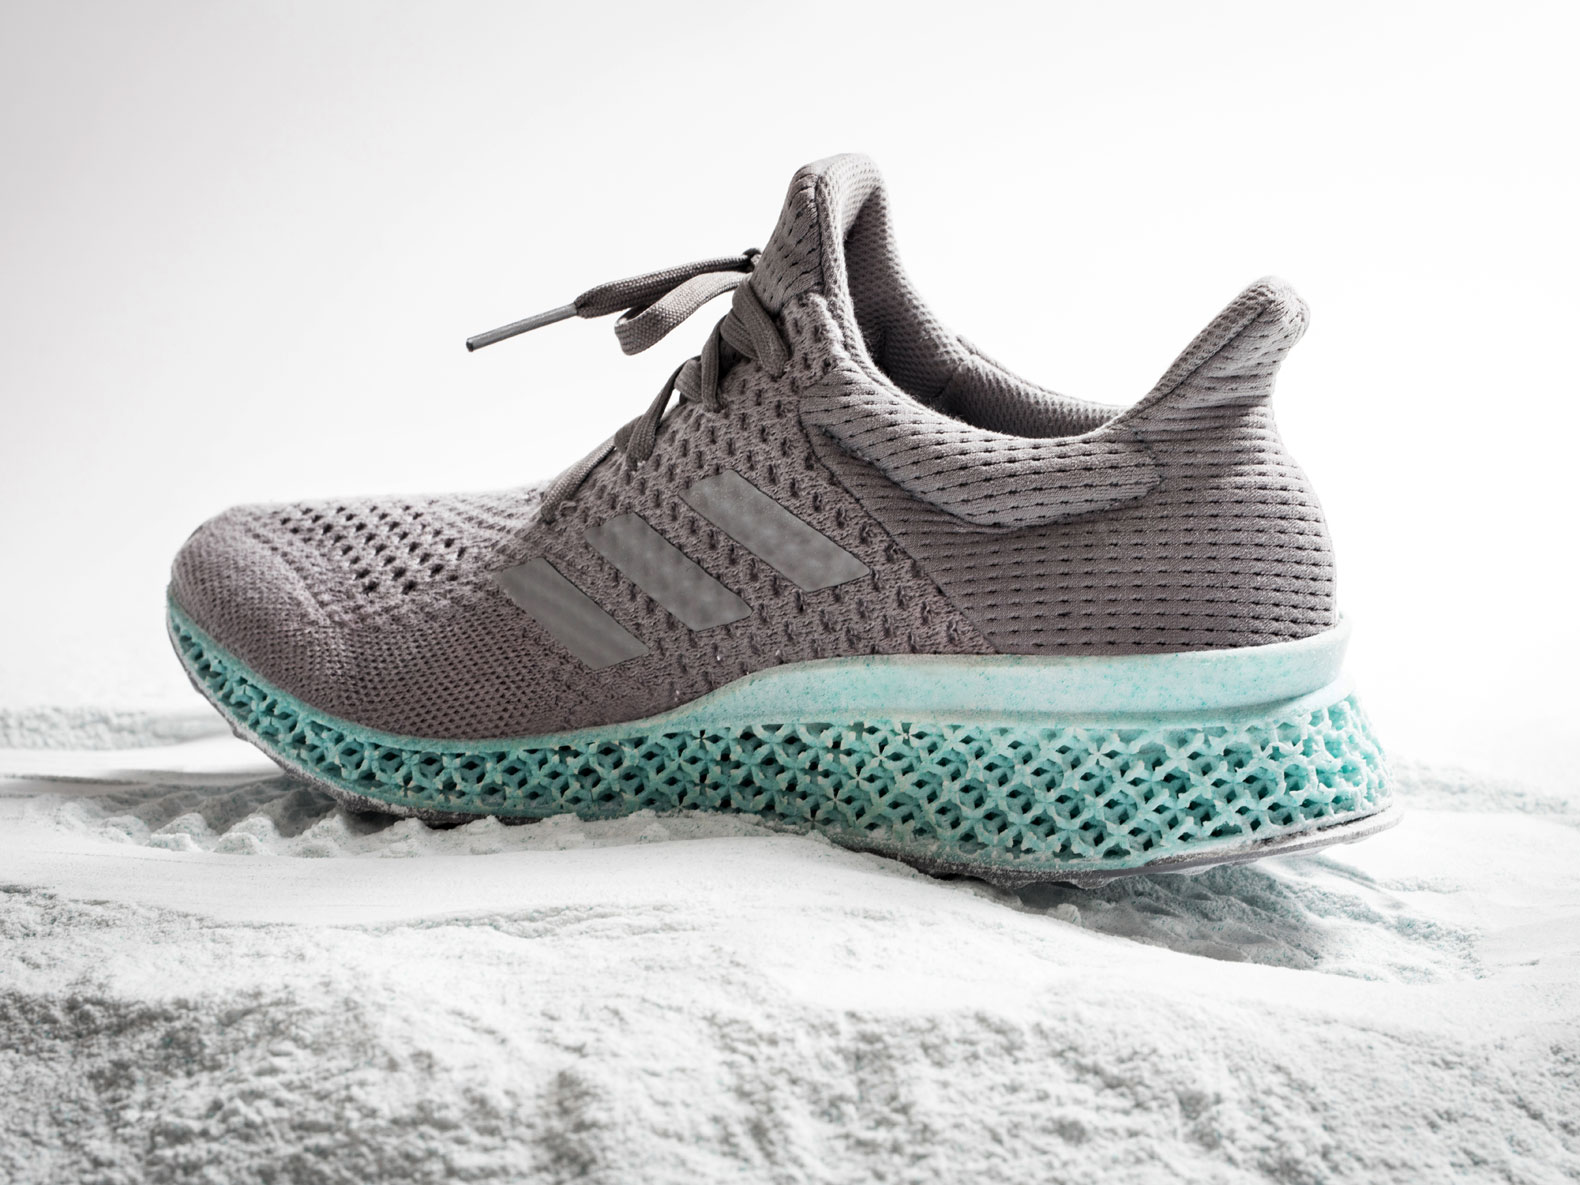 This sneaker was 3D-printed from recycled ocean trash